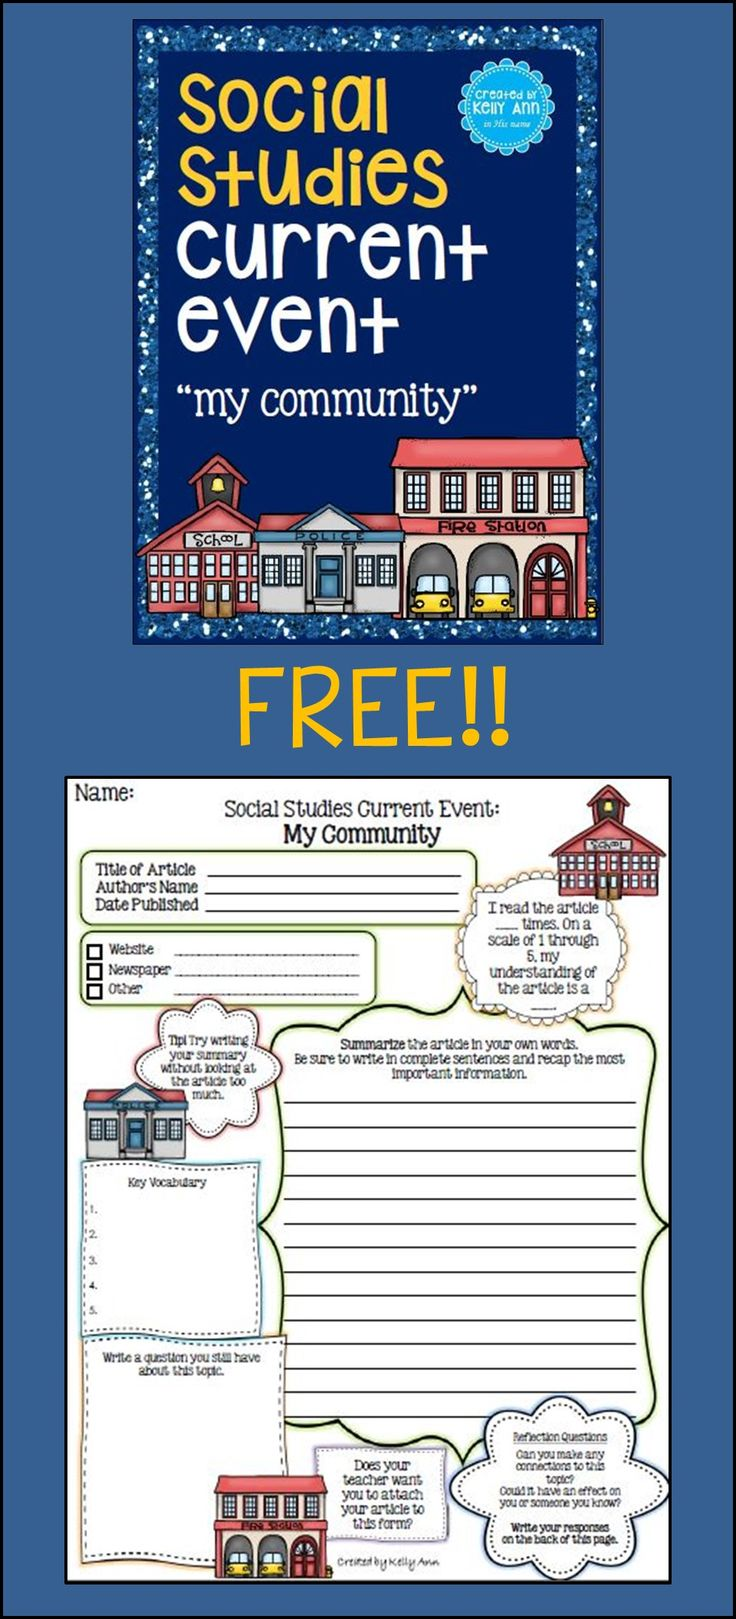 FREE: Social Studies Current Event - My Community